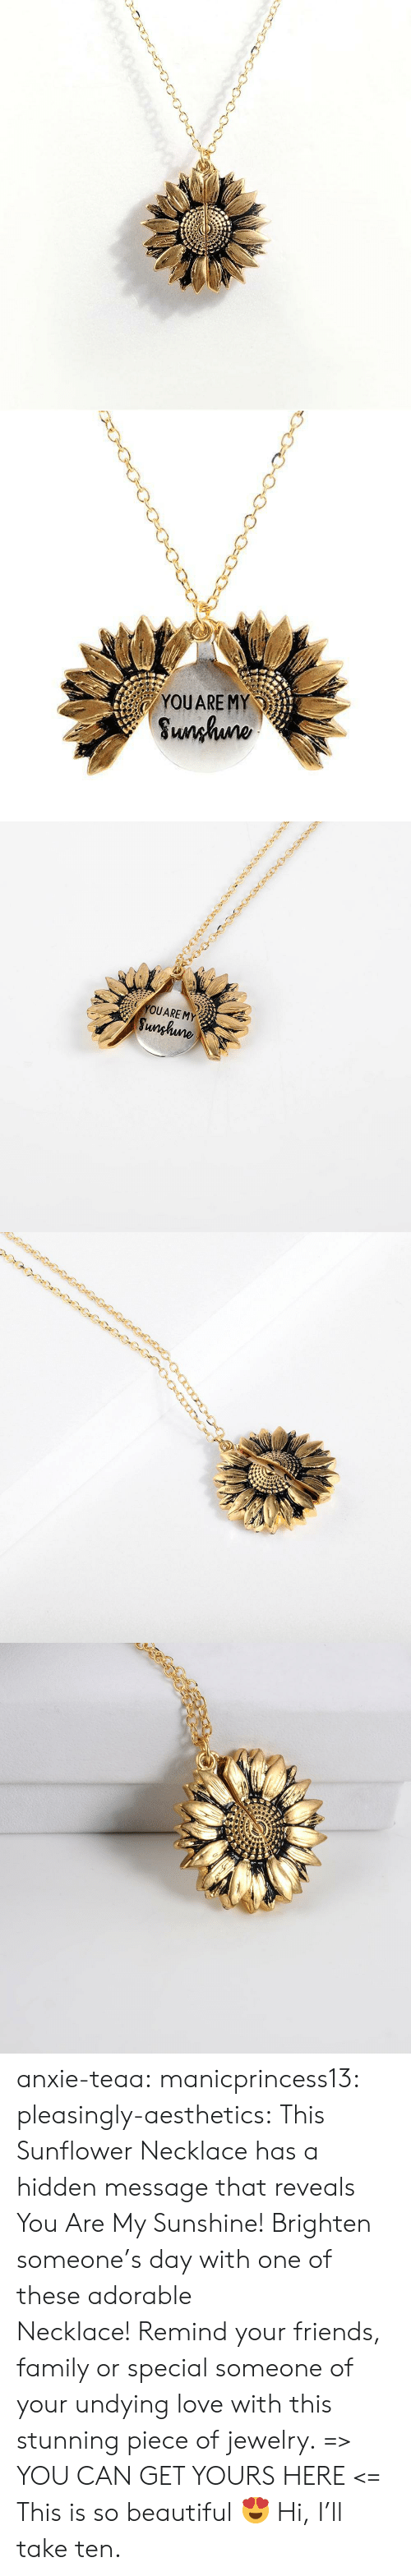 Beautiful, Family, and Friends: YOUARE MY  Sunhuno   YOUARE MY  Sunghune anxie-teaa:  manicprincess13:  pleasingly-aesthetics: This Sunflower Necklace has a hidden message that reveals You Are My Sunshine! Brighten someone's day with one of these adorable Necklace!Remind your friends, family or special someone of your undying love with this stunning piece of jewelry. => YOU CAN GET YOURS HERE <=   This is so beautiful 😍   Hi, I'll take ten.